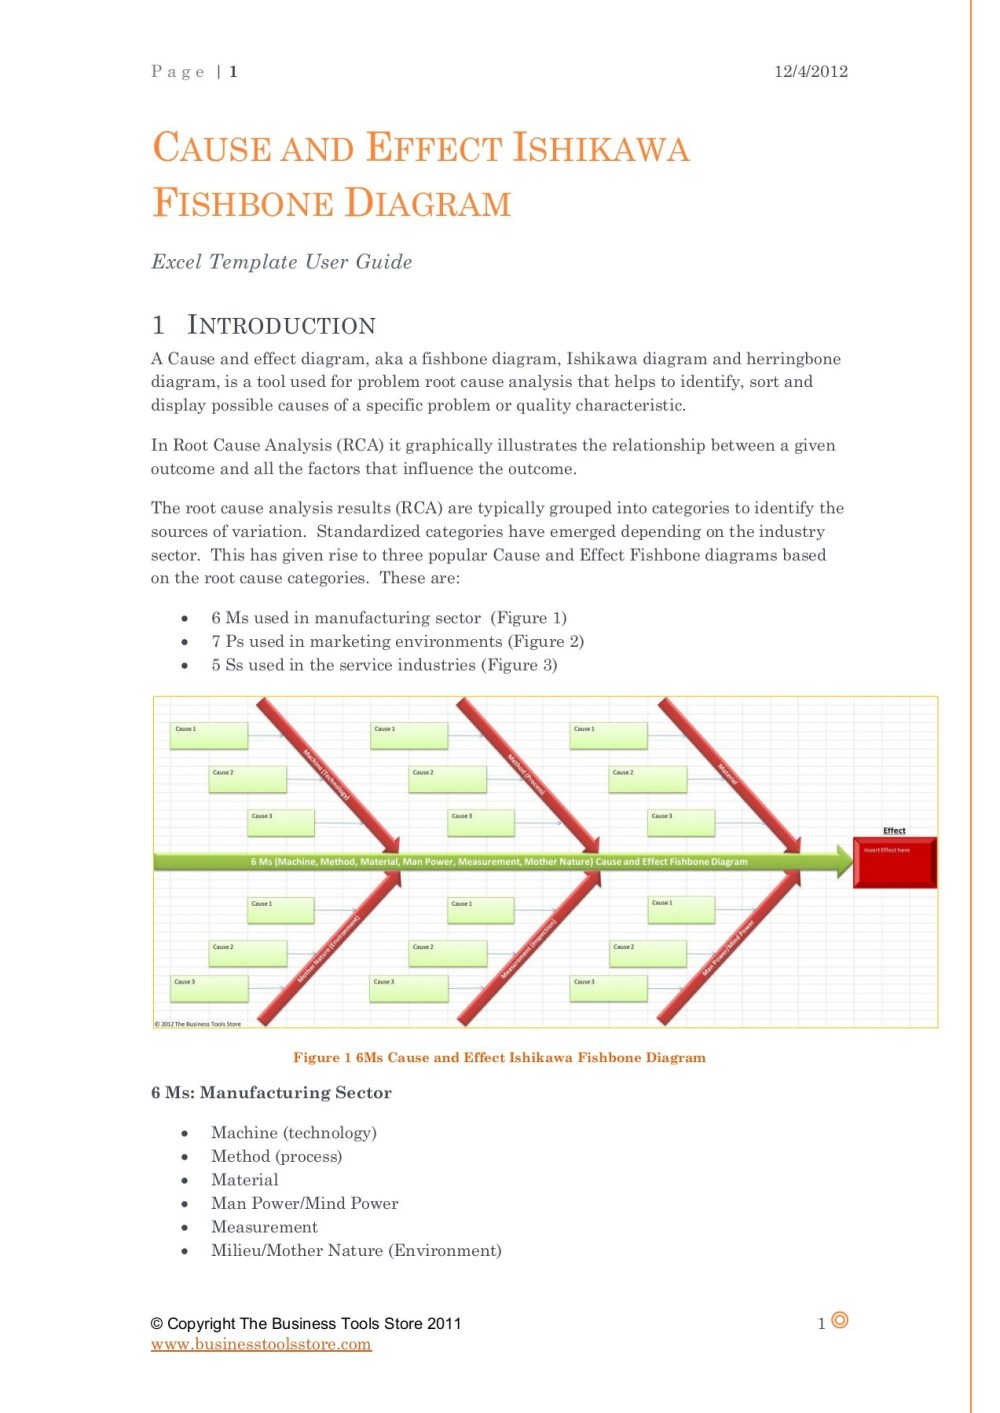 medium resolution of cause and effect ishikawa fishbone diagrams excel template user guide pages 1 5 text version fliphtml5